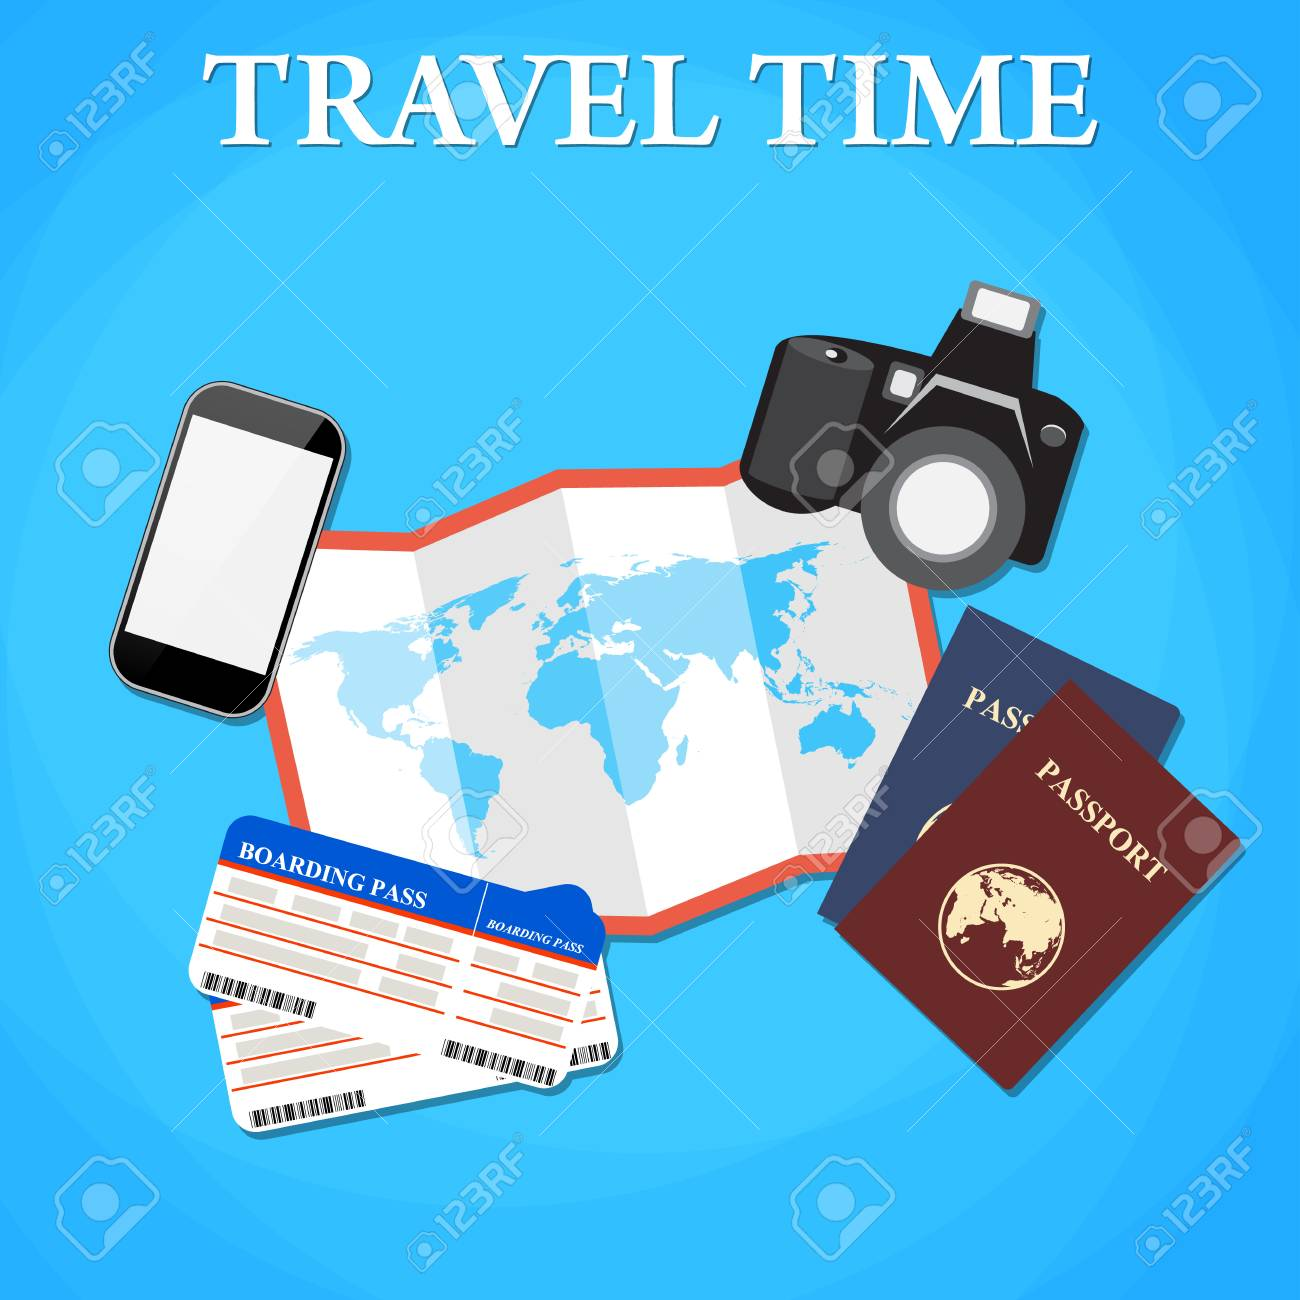 Travel and tourism concept air tickets passports and phone travel and tourism concept air tickets passports and phone camera and world map gumiabroncs Choice Image